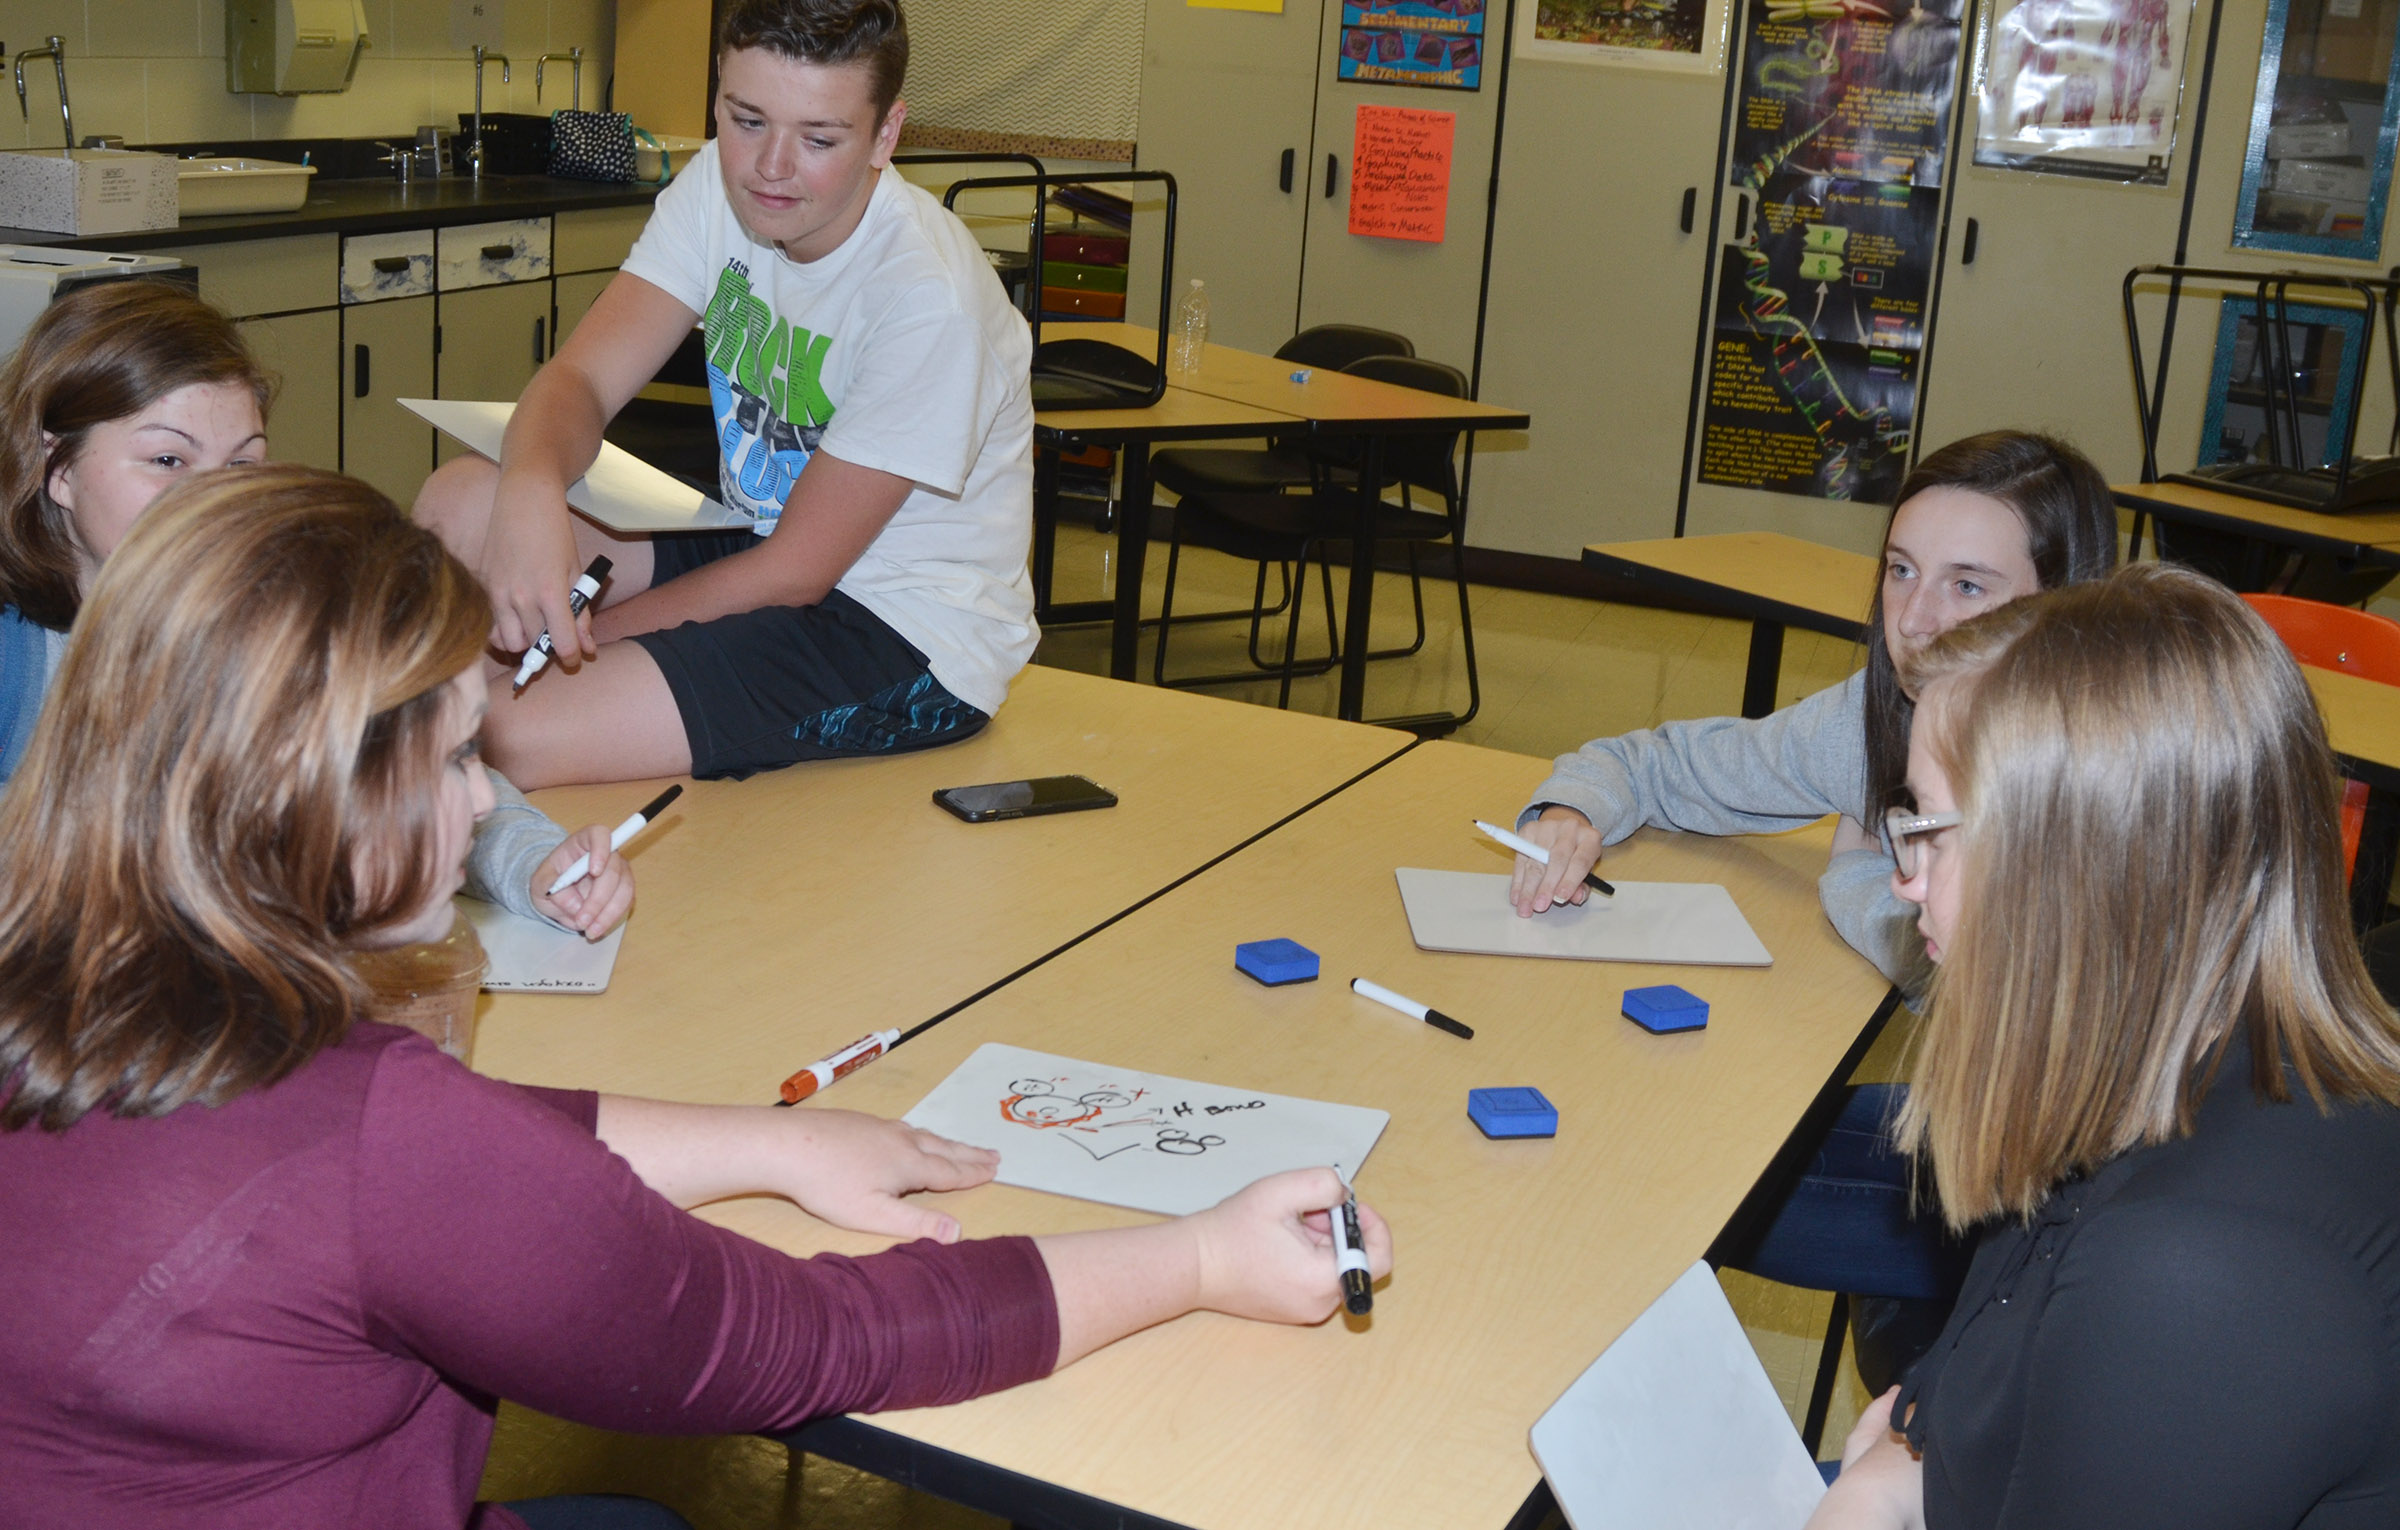 CHS teacher Lauren Bennett helps sophomores, from left, Shelby Smith, Gavin Johnson, Zoe McAninch and Samantha Jackson understand a science concept.